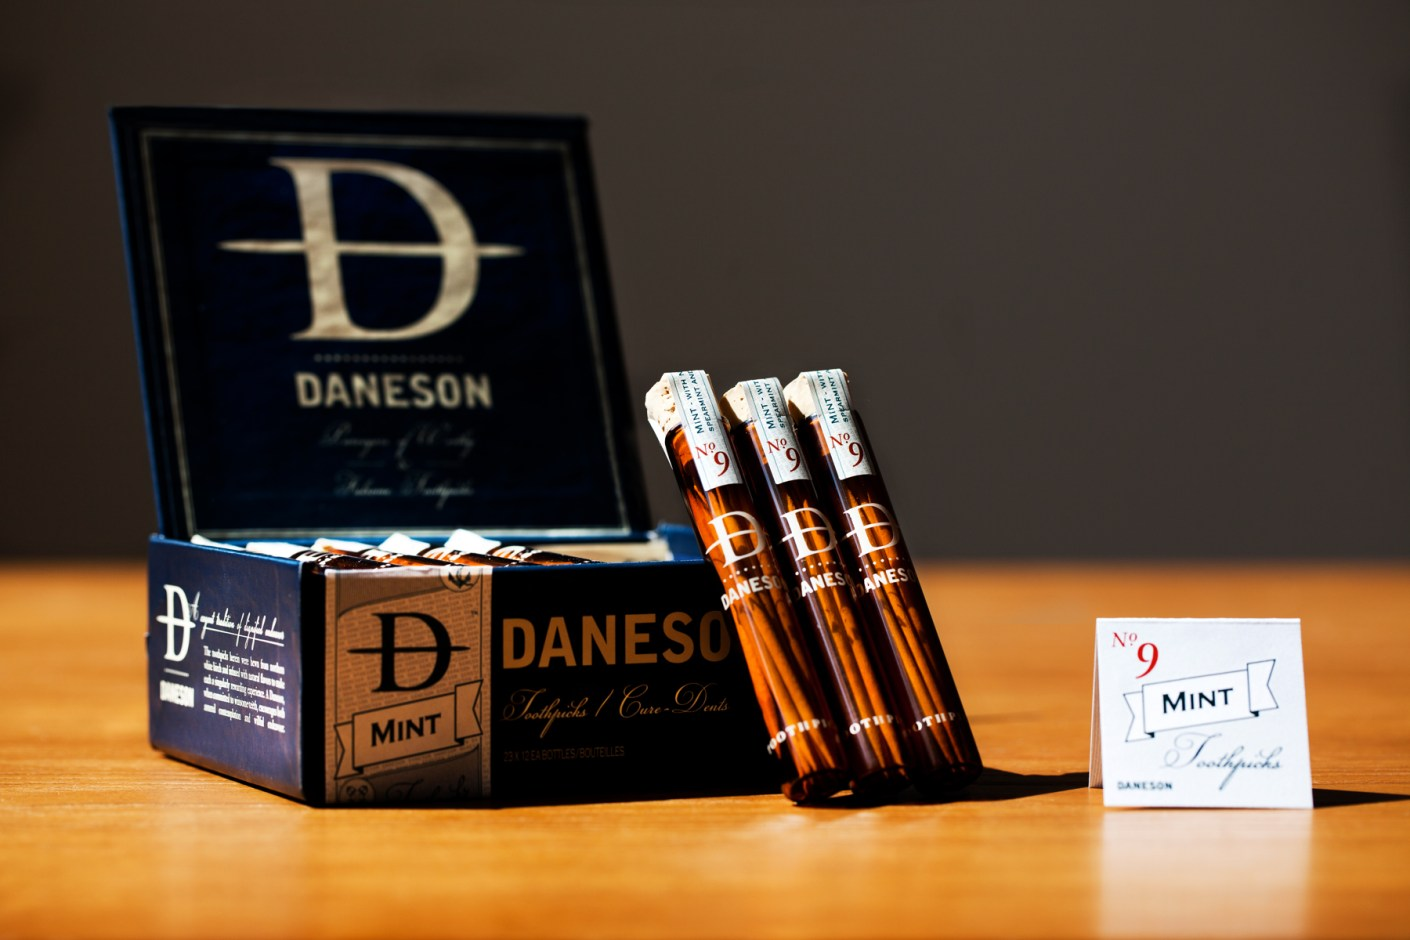 Image of Daneson Mint Nº 9 Toothpick